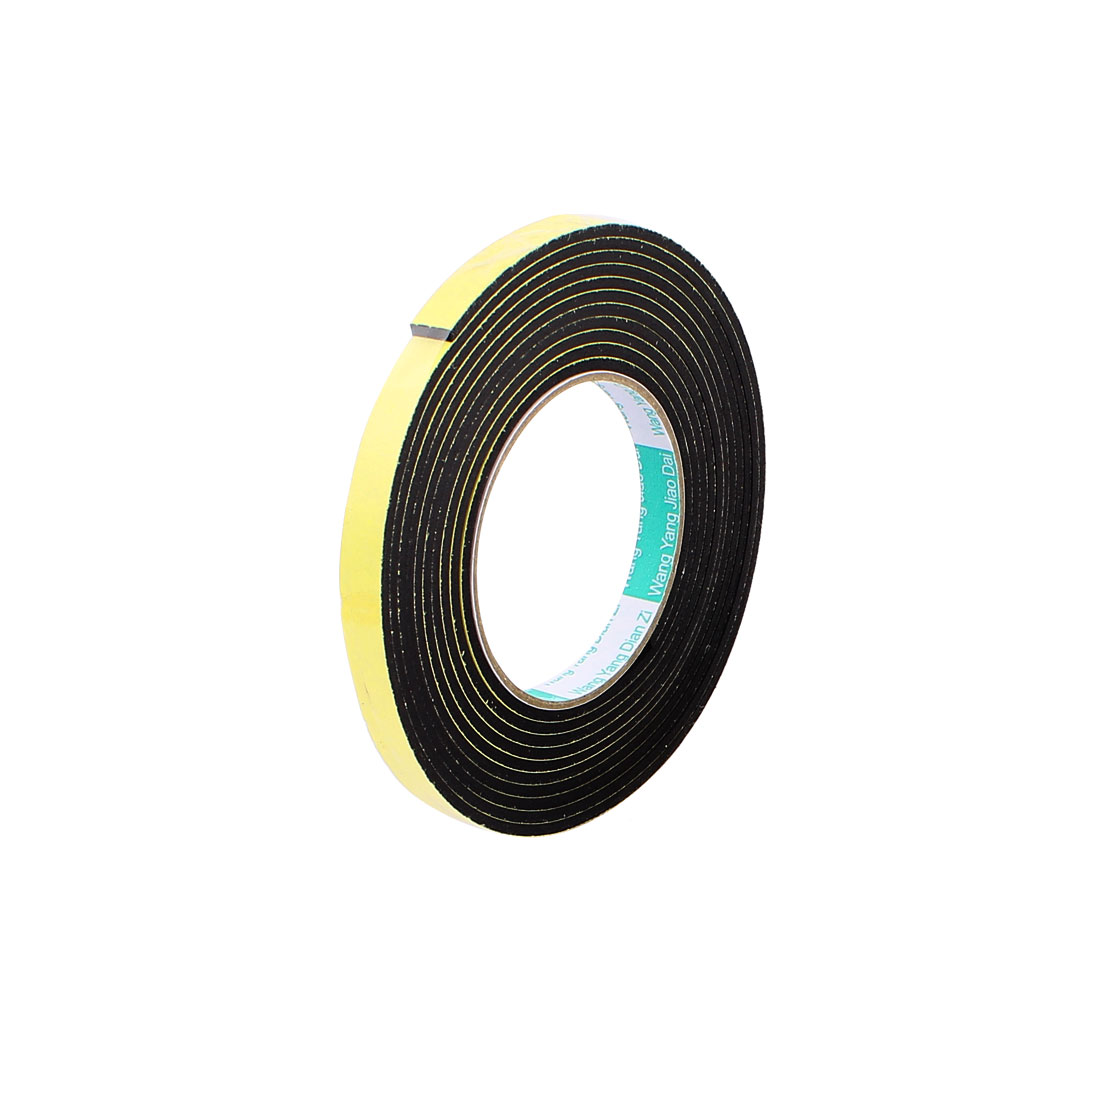 4M Length 1CM Width 3MM Thick Single-Sided Sealing Shockproof Sponge Tape